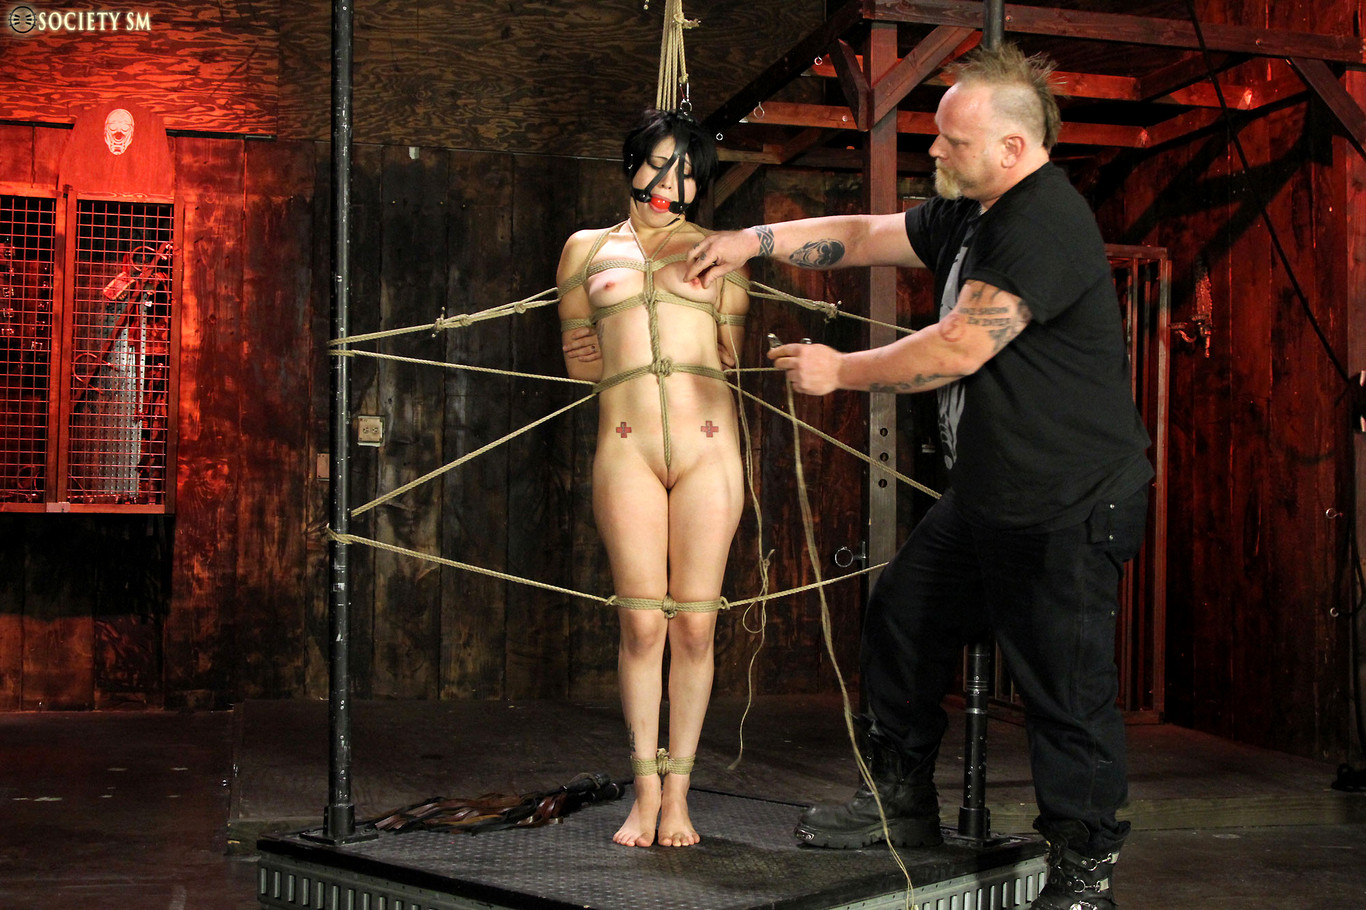 boise-bdsm-society-made-out-vaginas